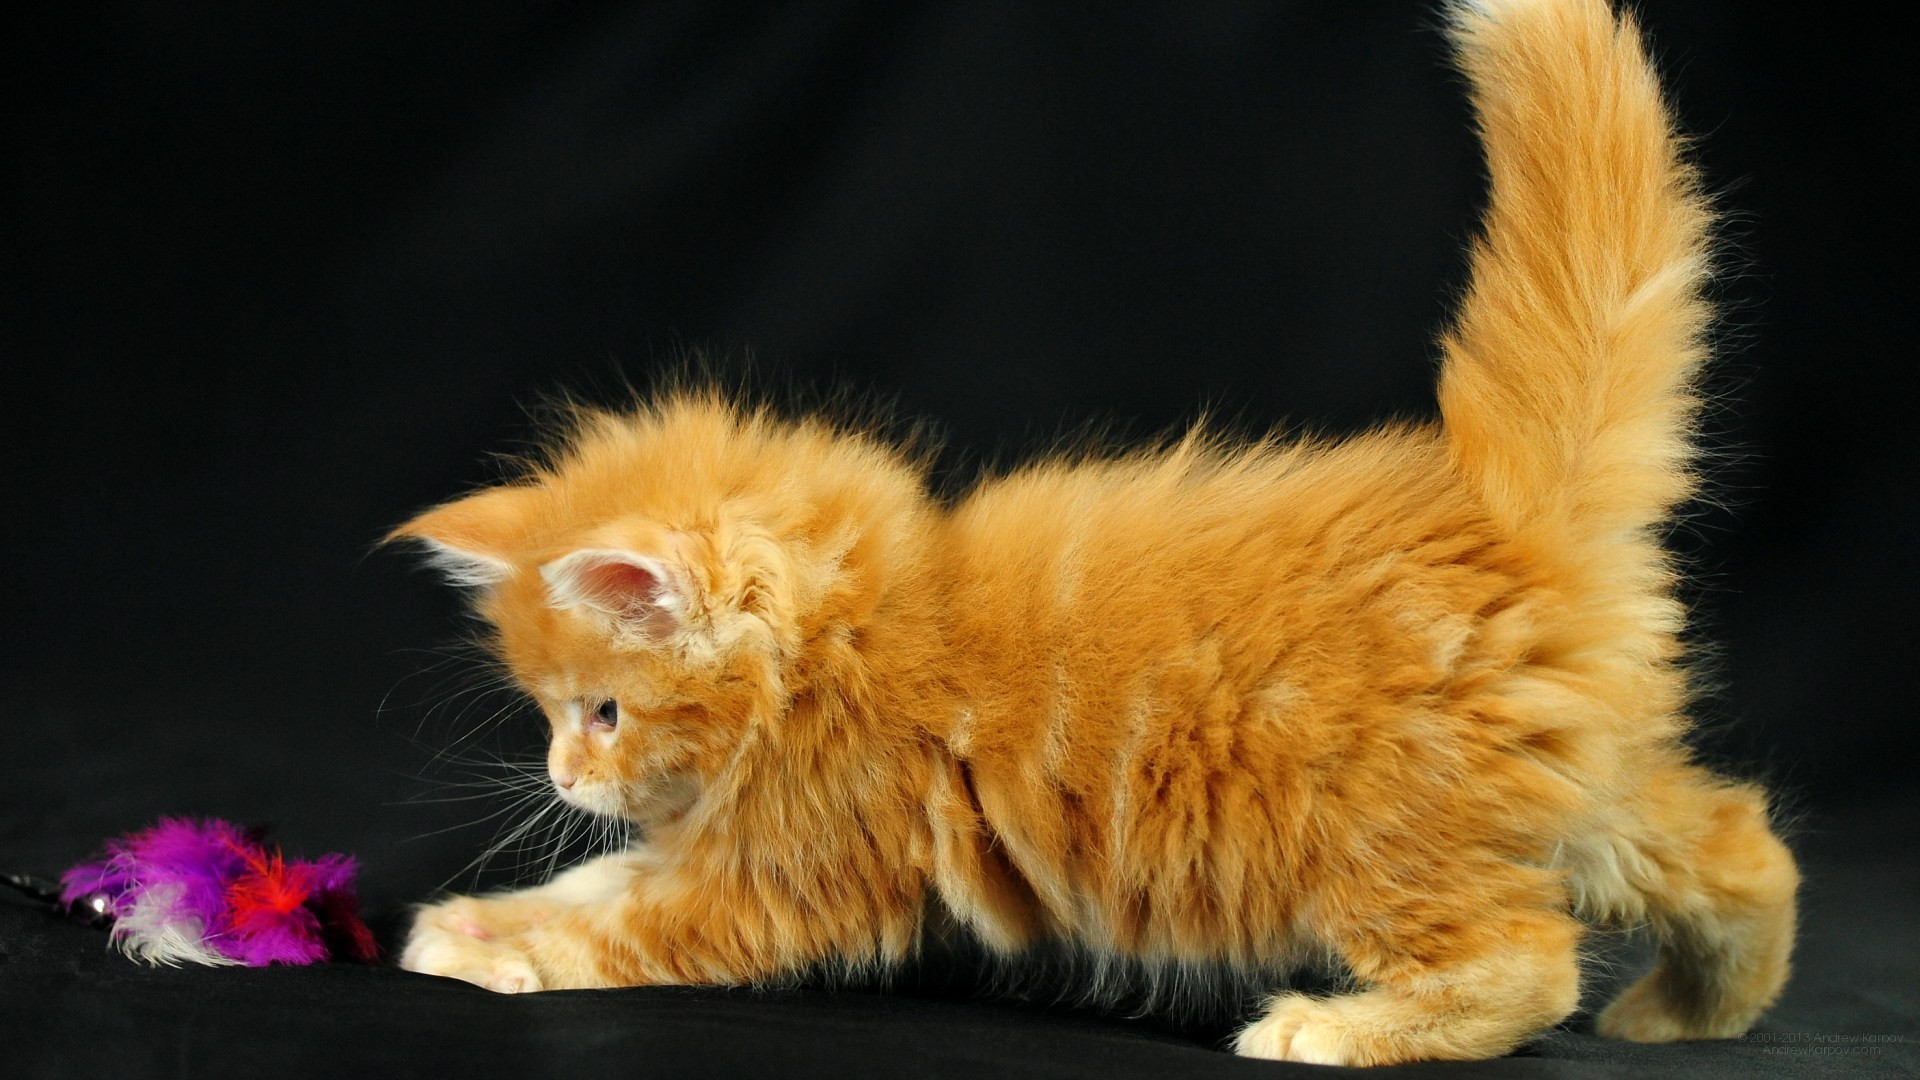 1920x1080 Pictures lolcat Funny Cat desktop wallpaper picture 1920 x 1080 Orinoco,  Maine Coon kitten